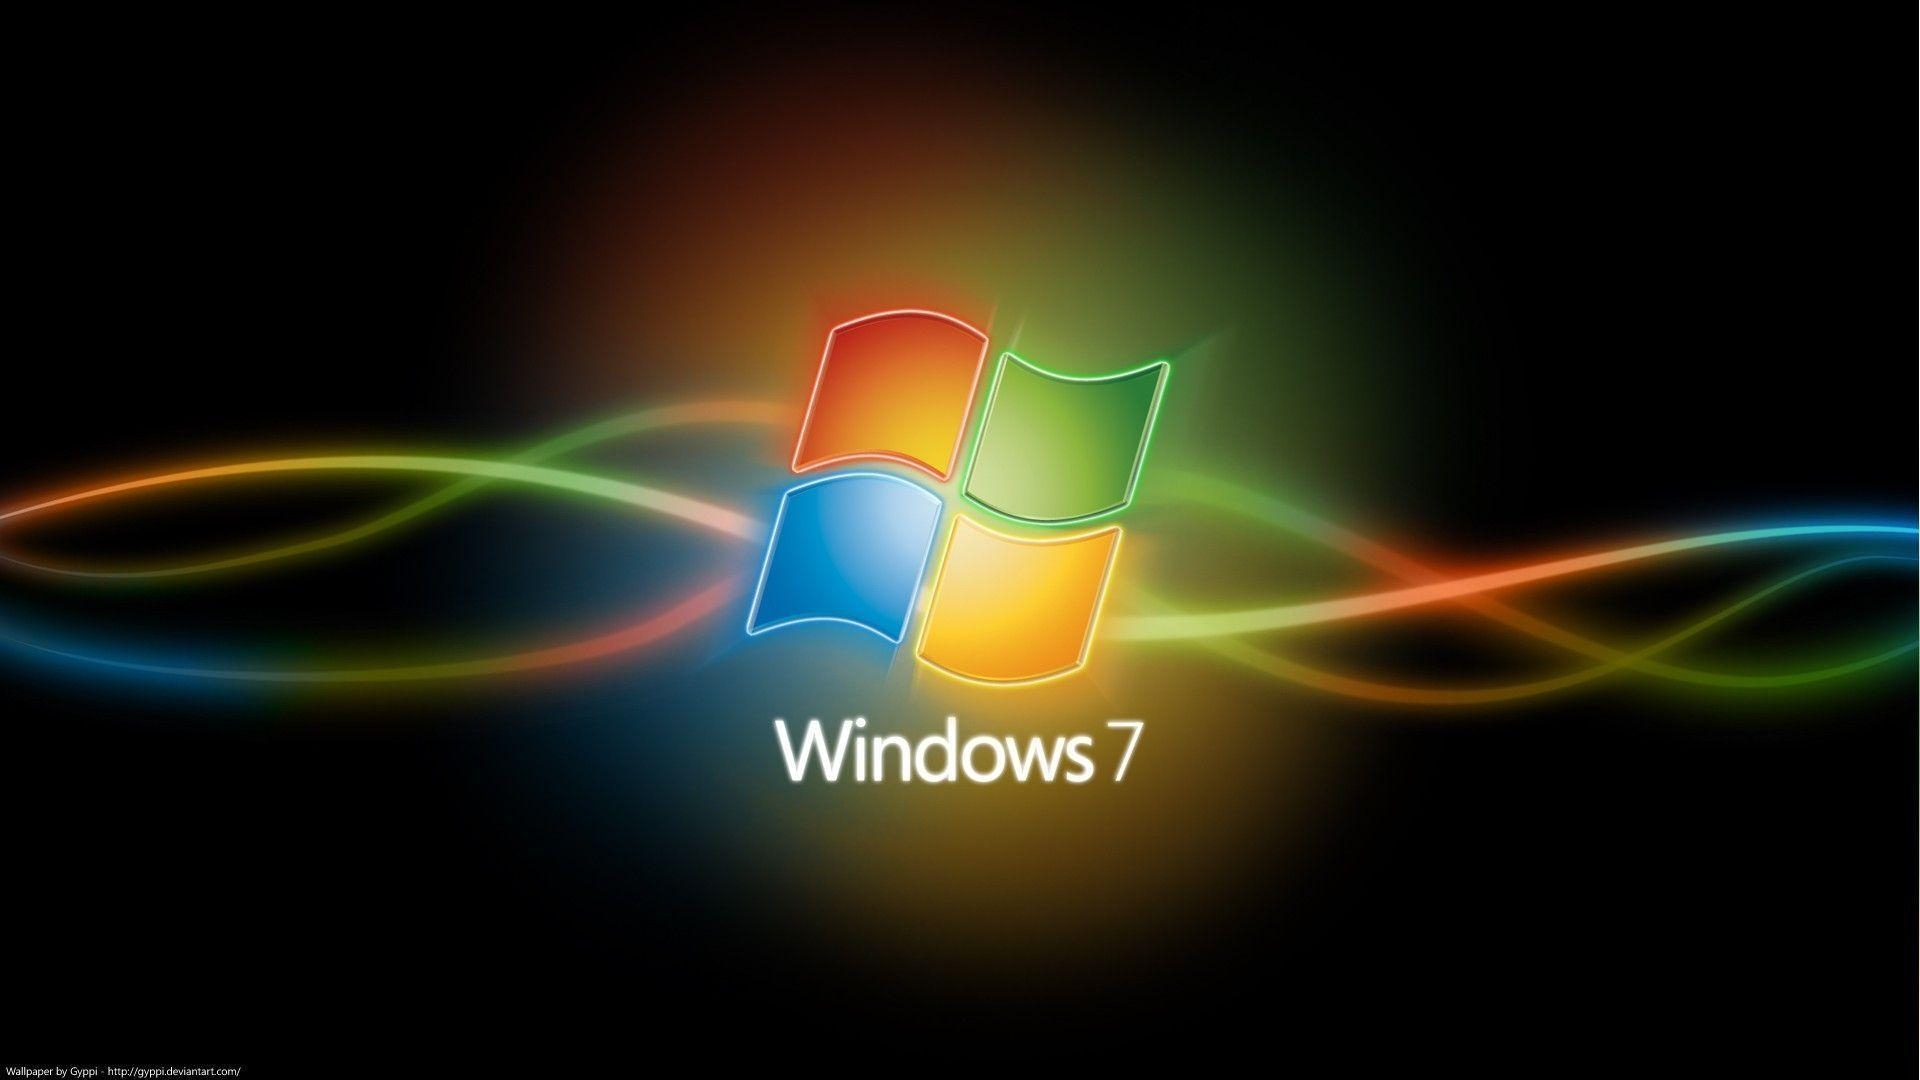 gif backgrounds windows 7 - wallpaper cave